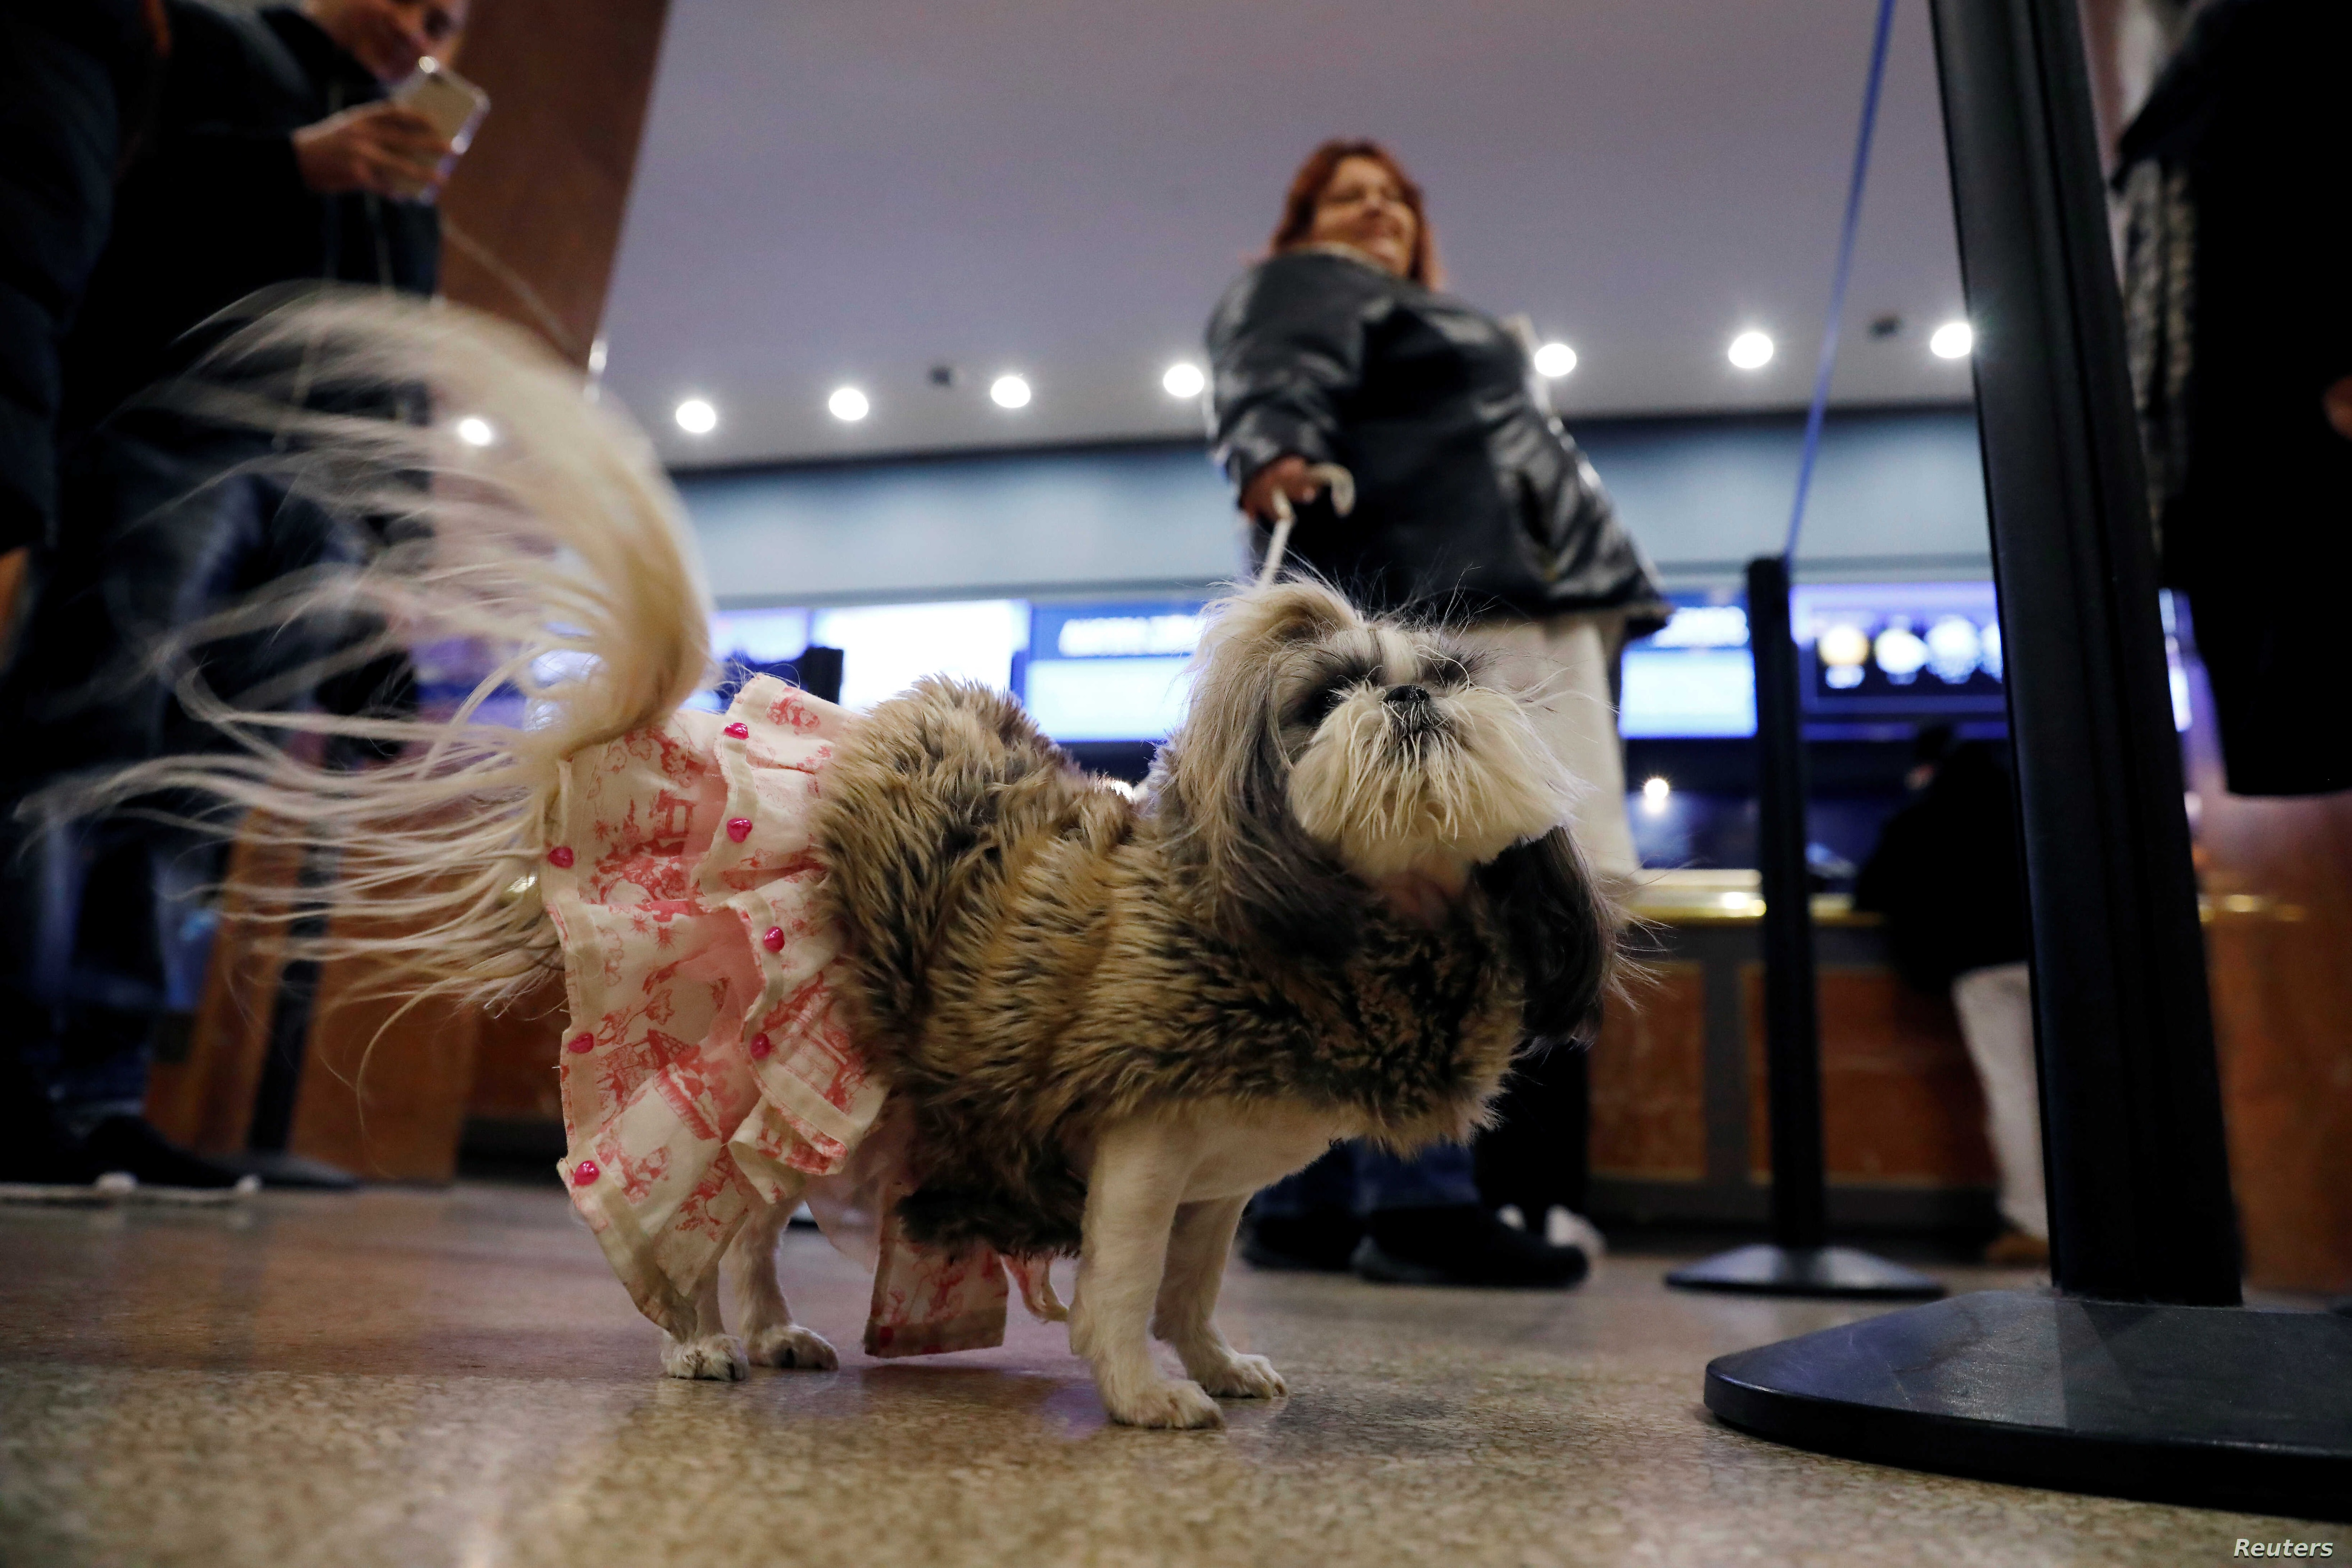 Her Majesty Briee Bride Elizabeth, an Imperial Shih Tzu breed, stands in the lobby after arriving at the Hotel Pennsylvania ahead of the 142nd Westminster Kennel Club Dog Show in midtown Manhattan, New York City, U.S., Feb. 9, 2018.